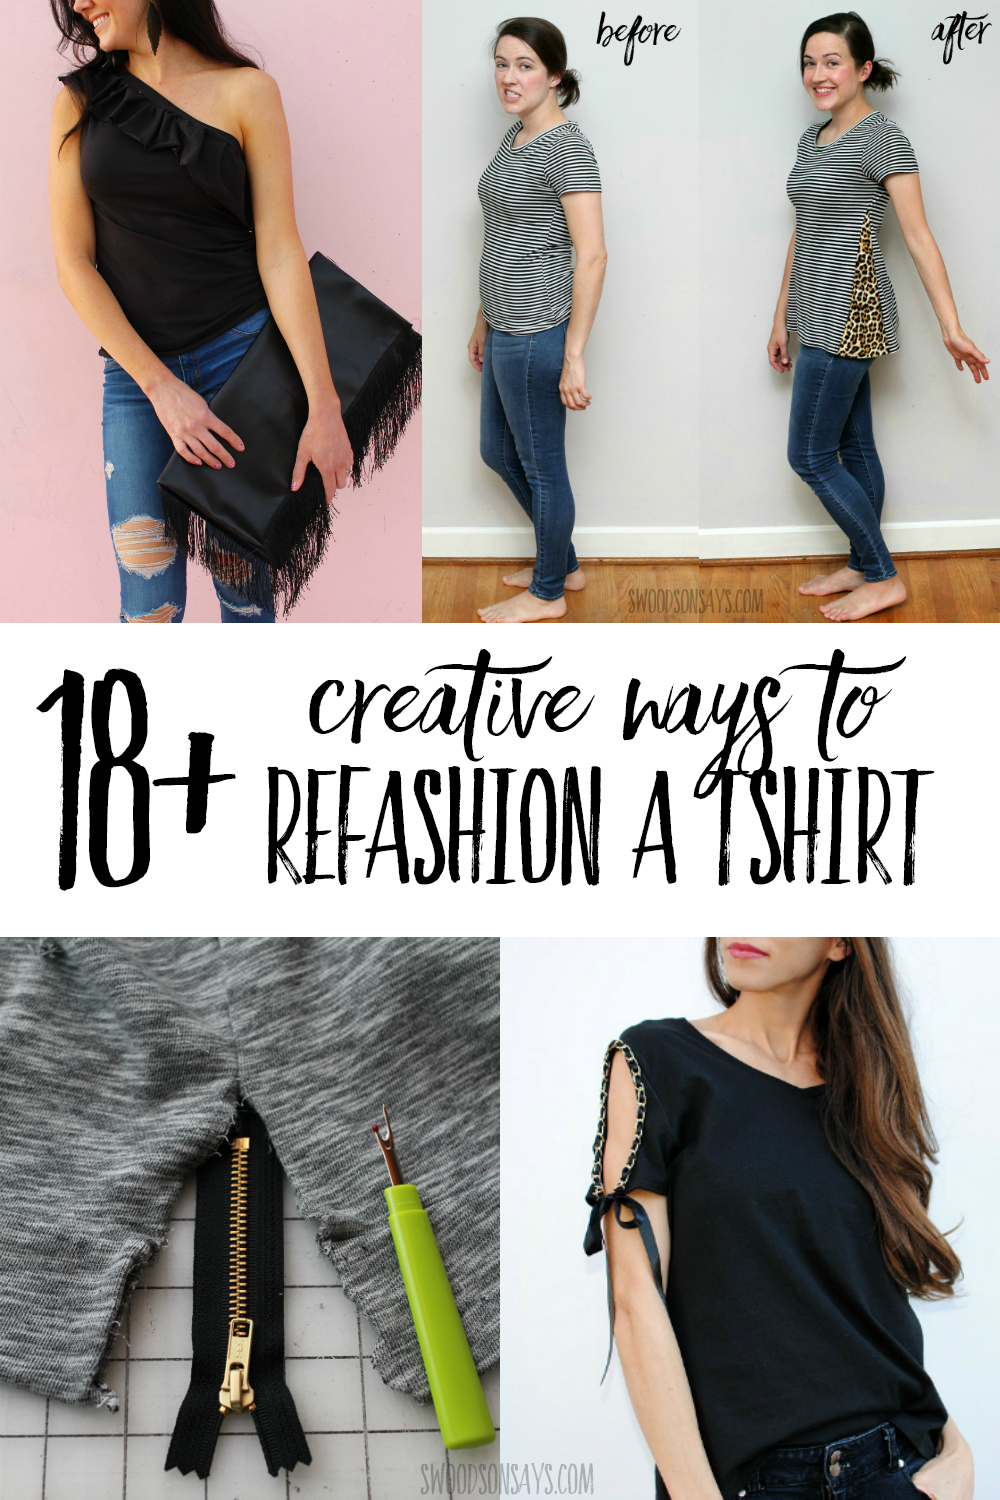 tshirt refashion ideas